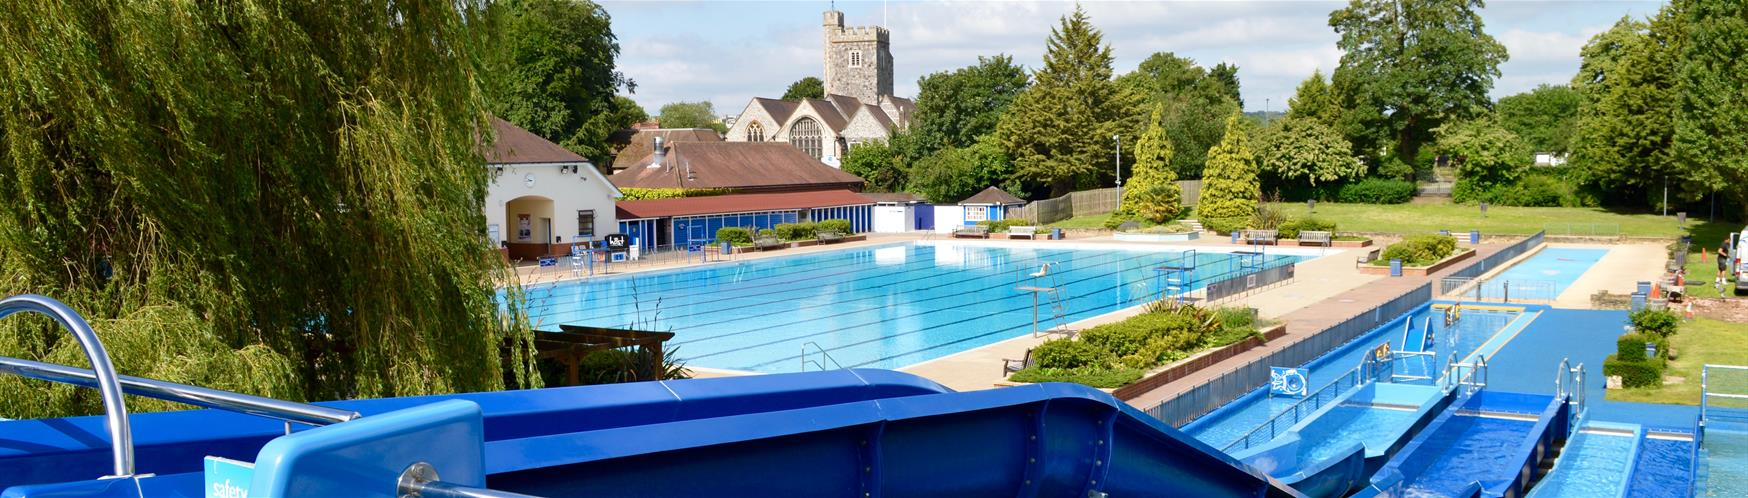 Cool down and relax at Guildford Lido